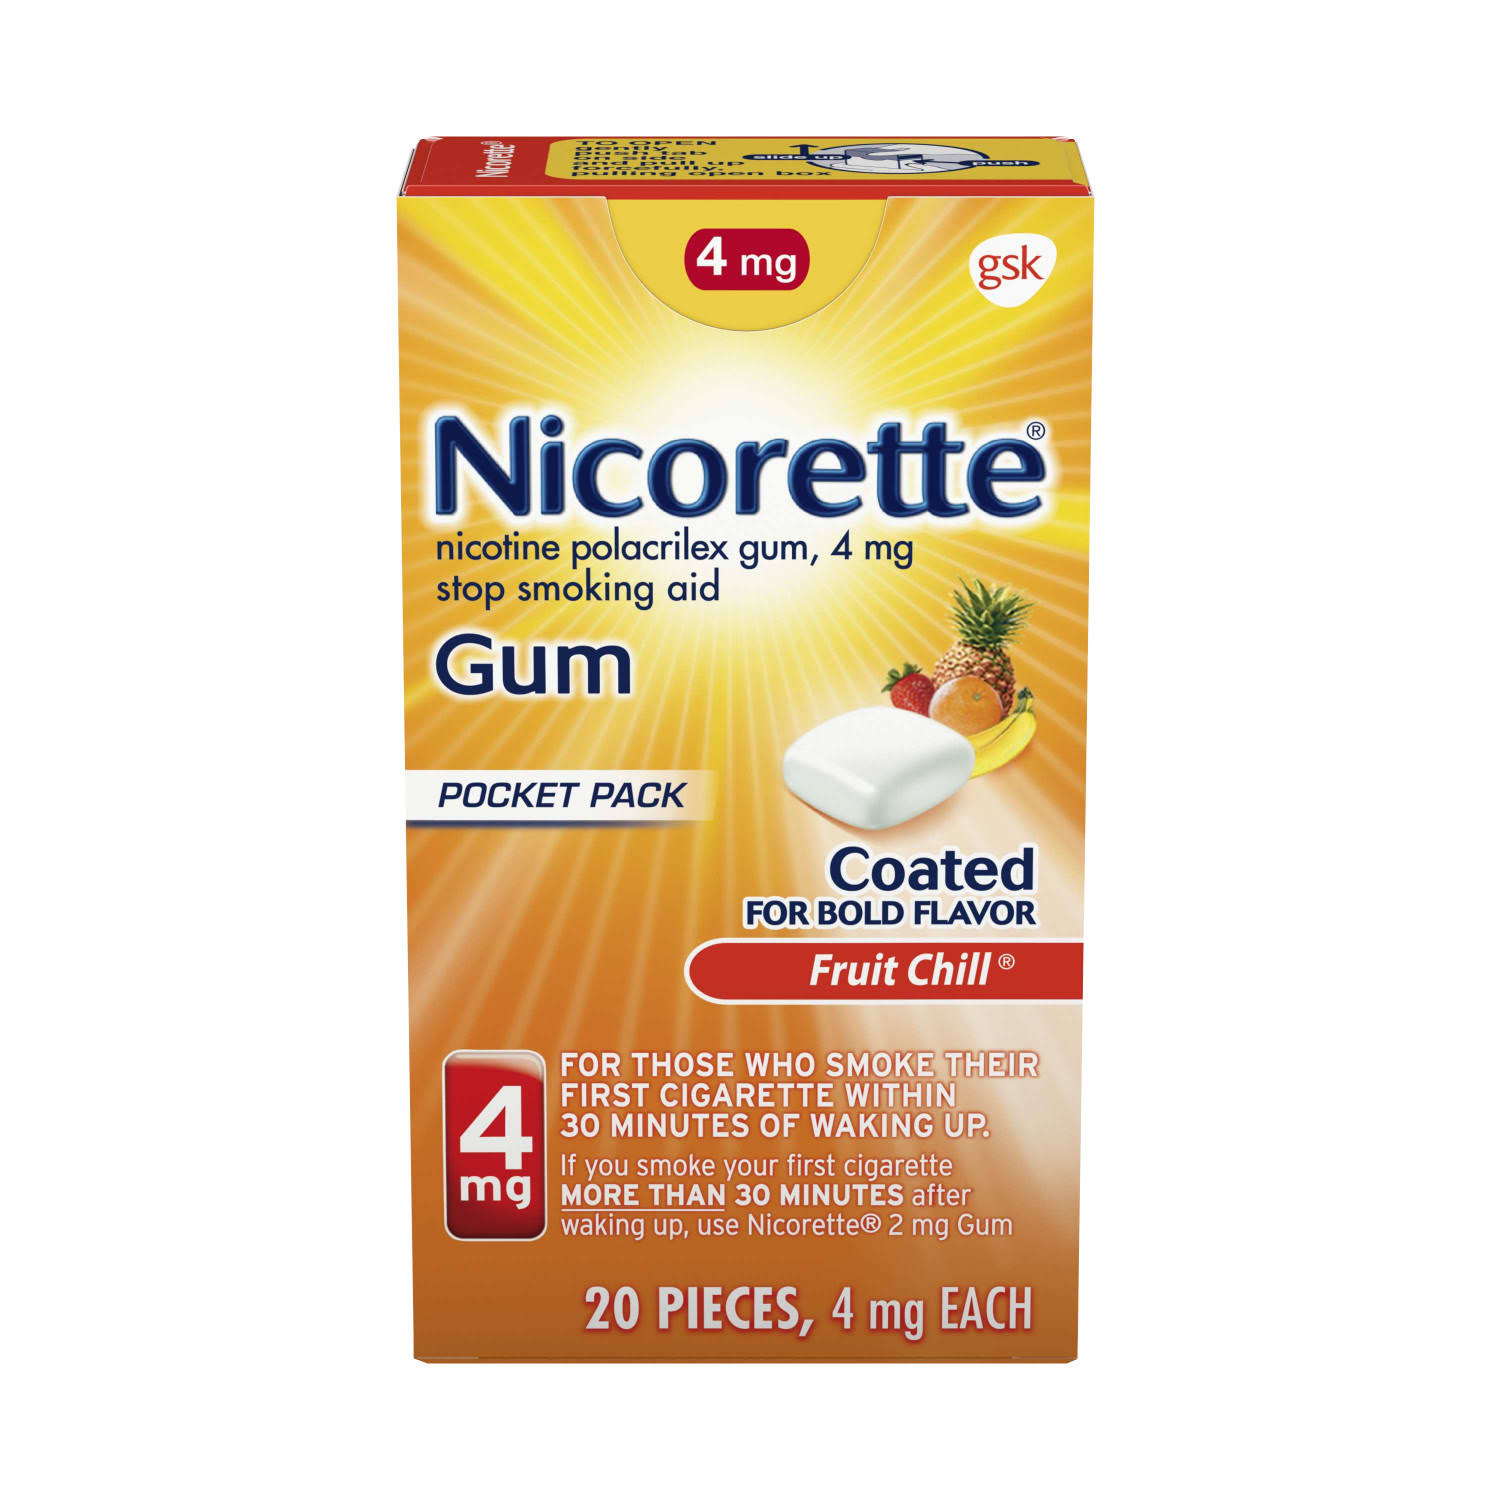 Nicorette Stop Smoking Aid Gum - 4mg, Fruit Chill Coated, 20ct